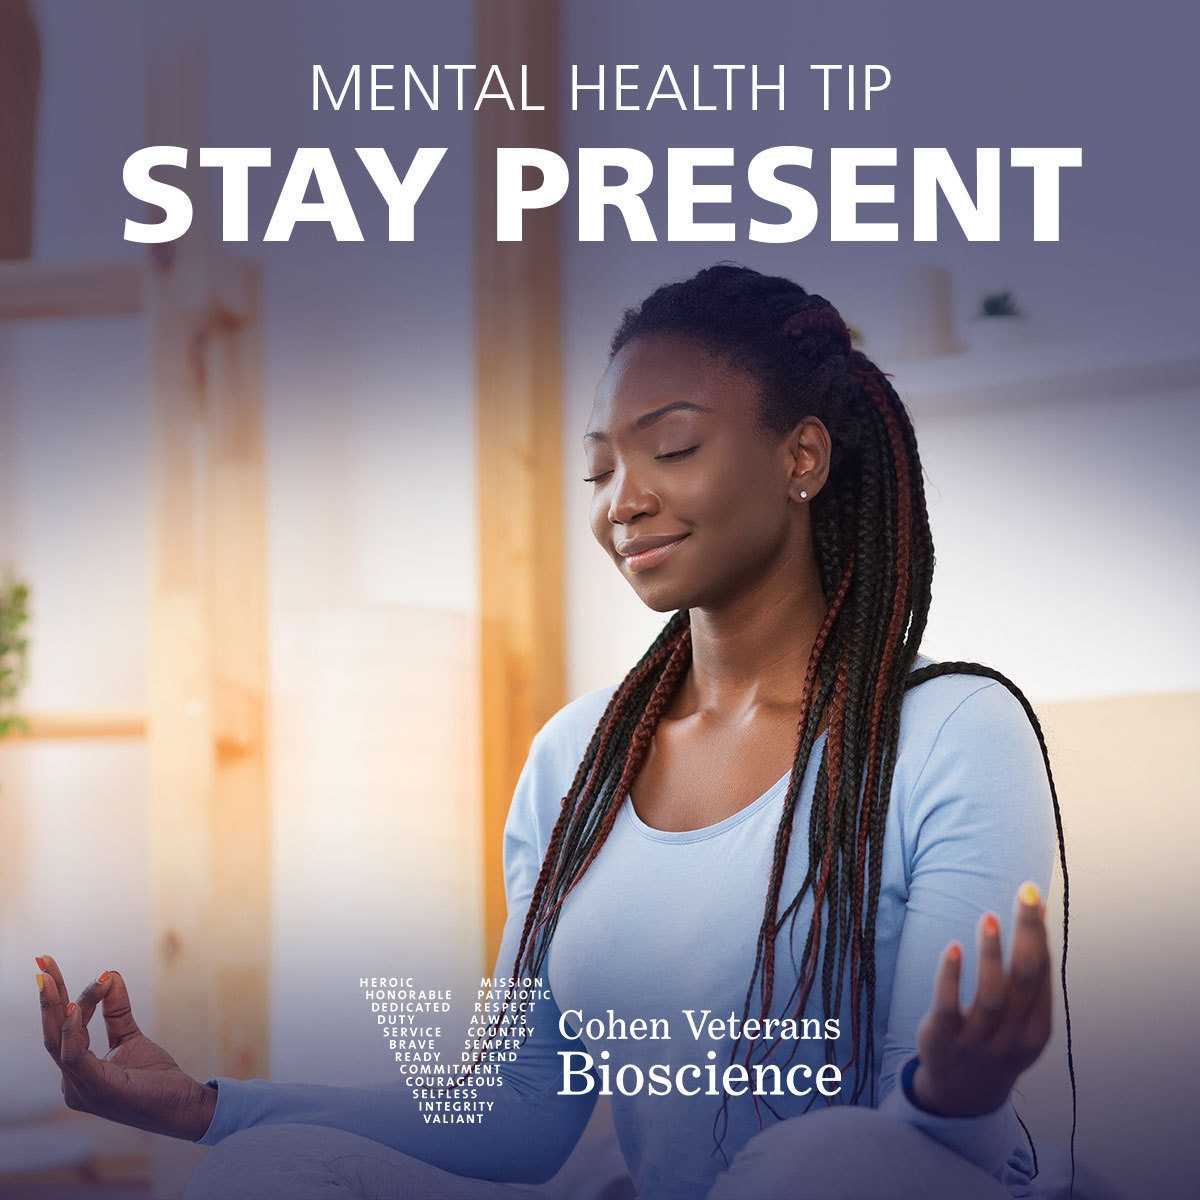 Mental Health Tip: Stay Present